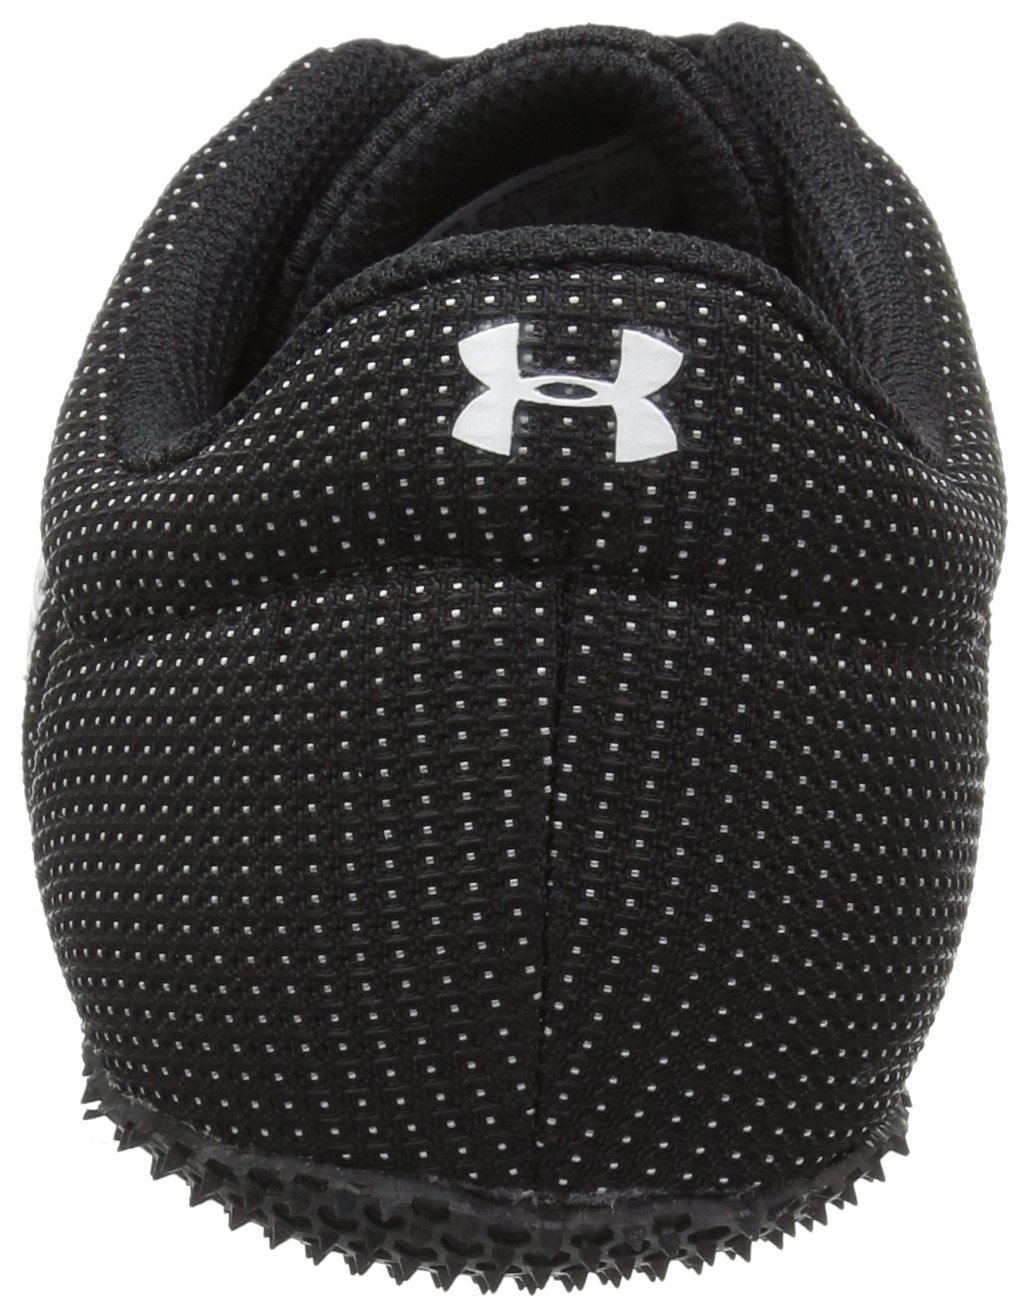 Under Armour Men's Kick Sprint Spike Running Shoe White (100)/Black 12 by Under Armour (Image #2)